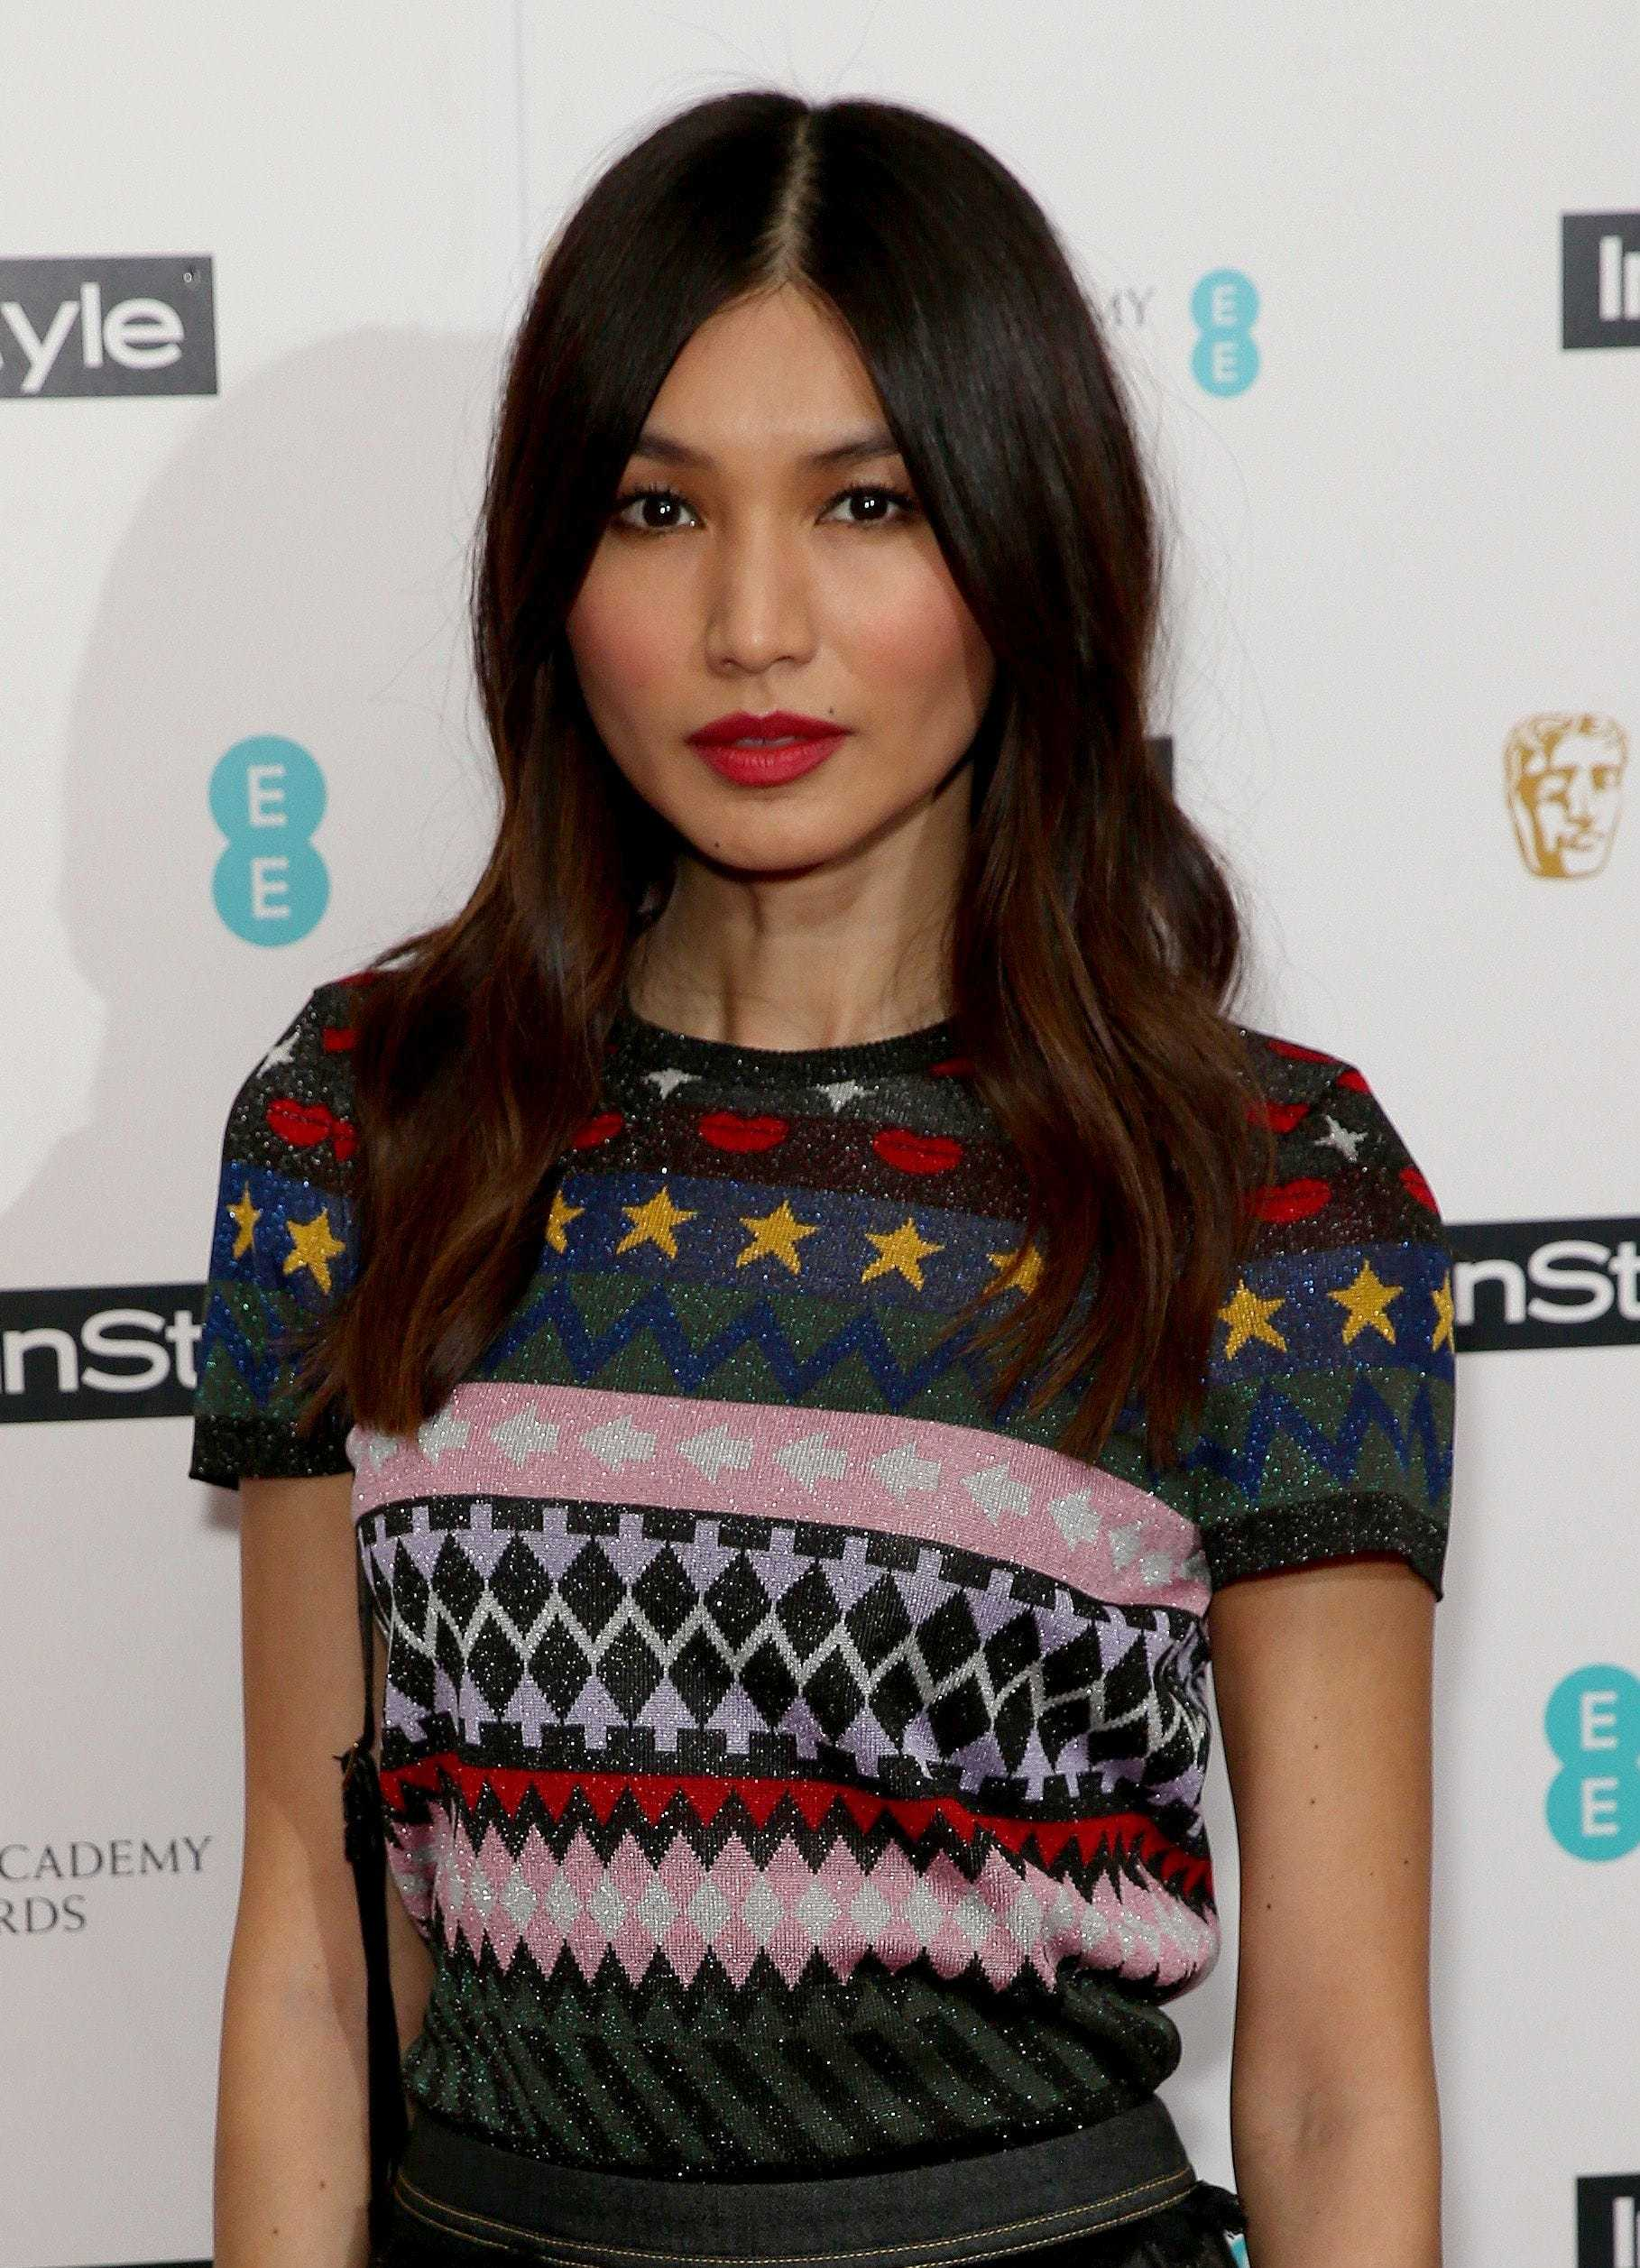 instyle ee bafta rising star awards: best hairstyles from the event